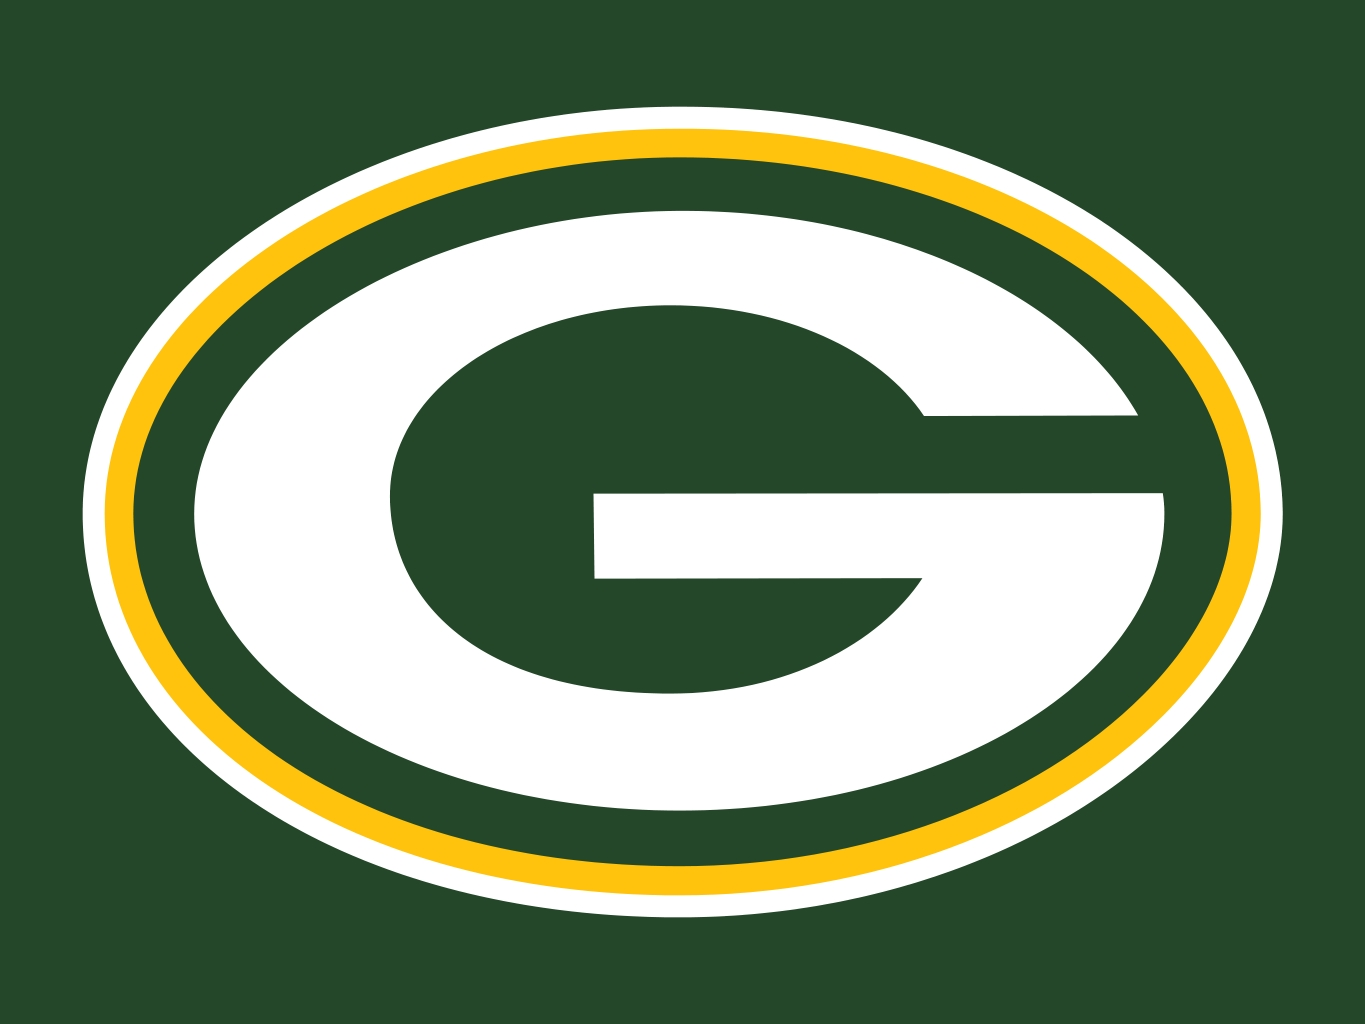 Green_Bay_Packers-logo_1489295222309.jpg